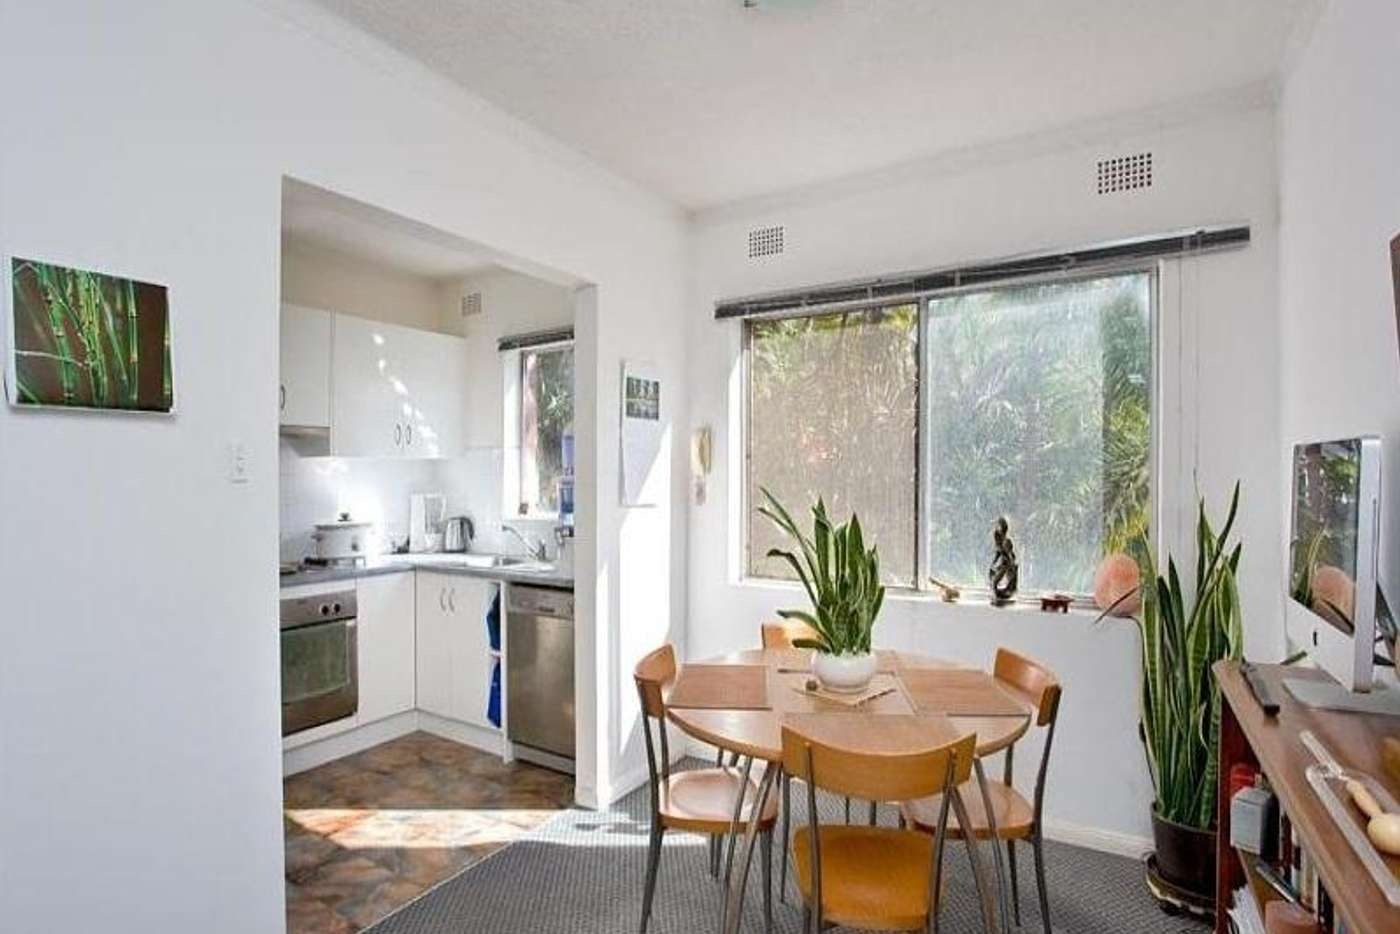 Main view of Homely apartment listing, 2/30 Hewlett Street, Bronte NSW 2024